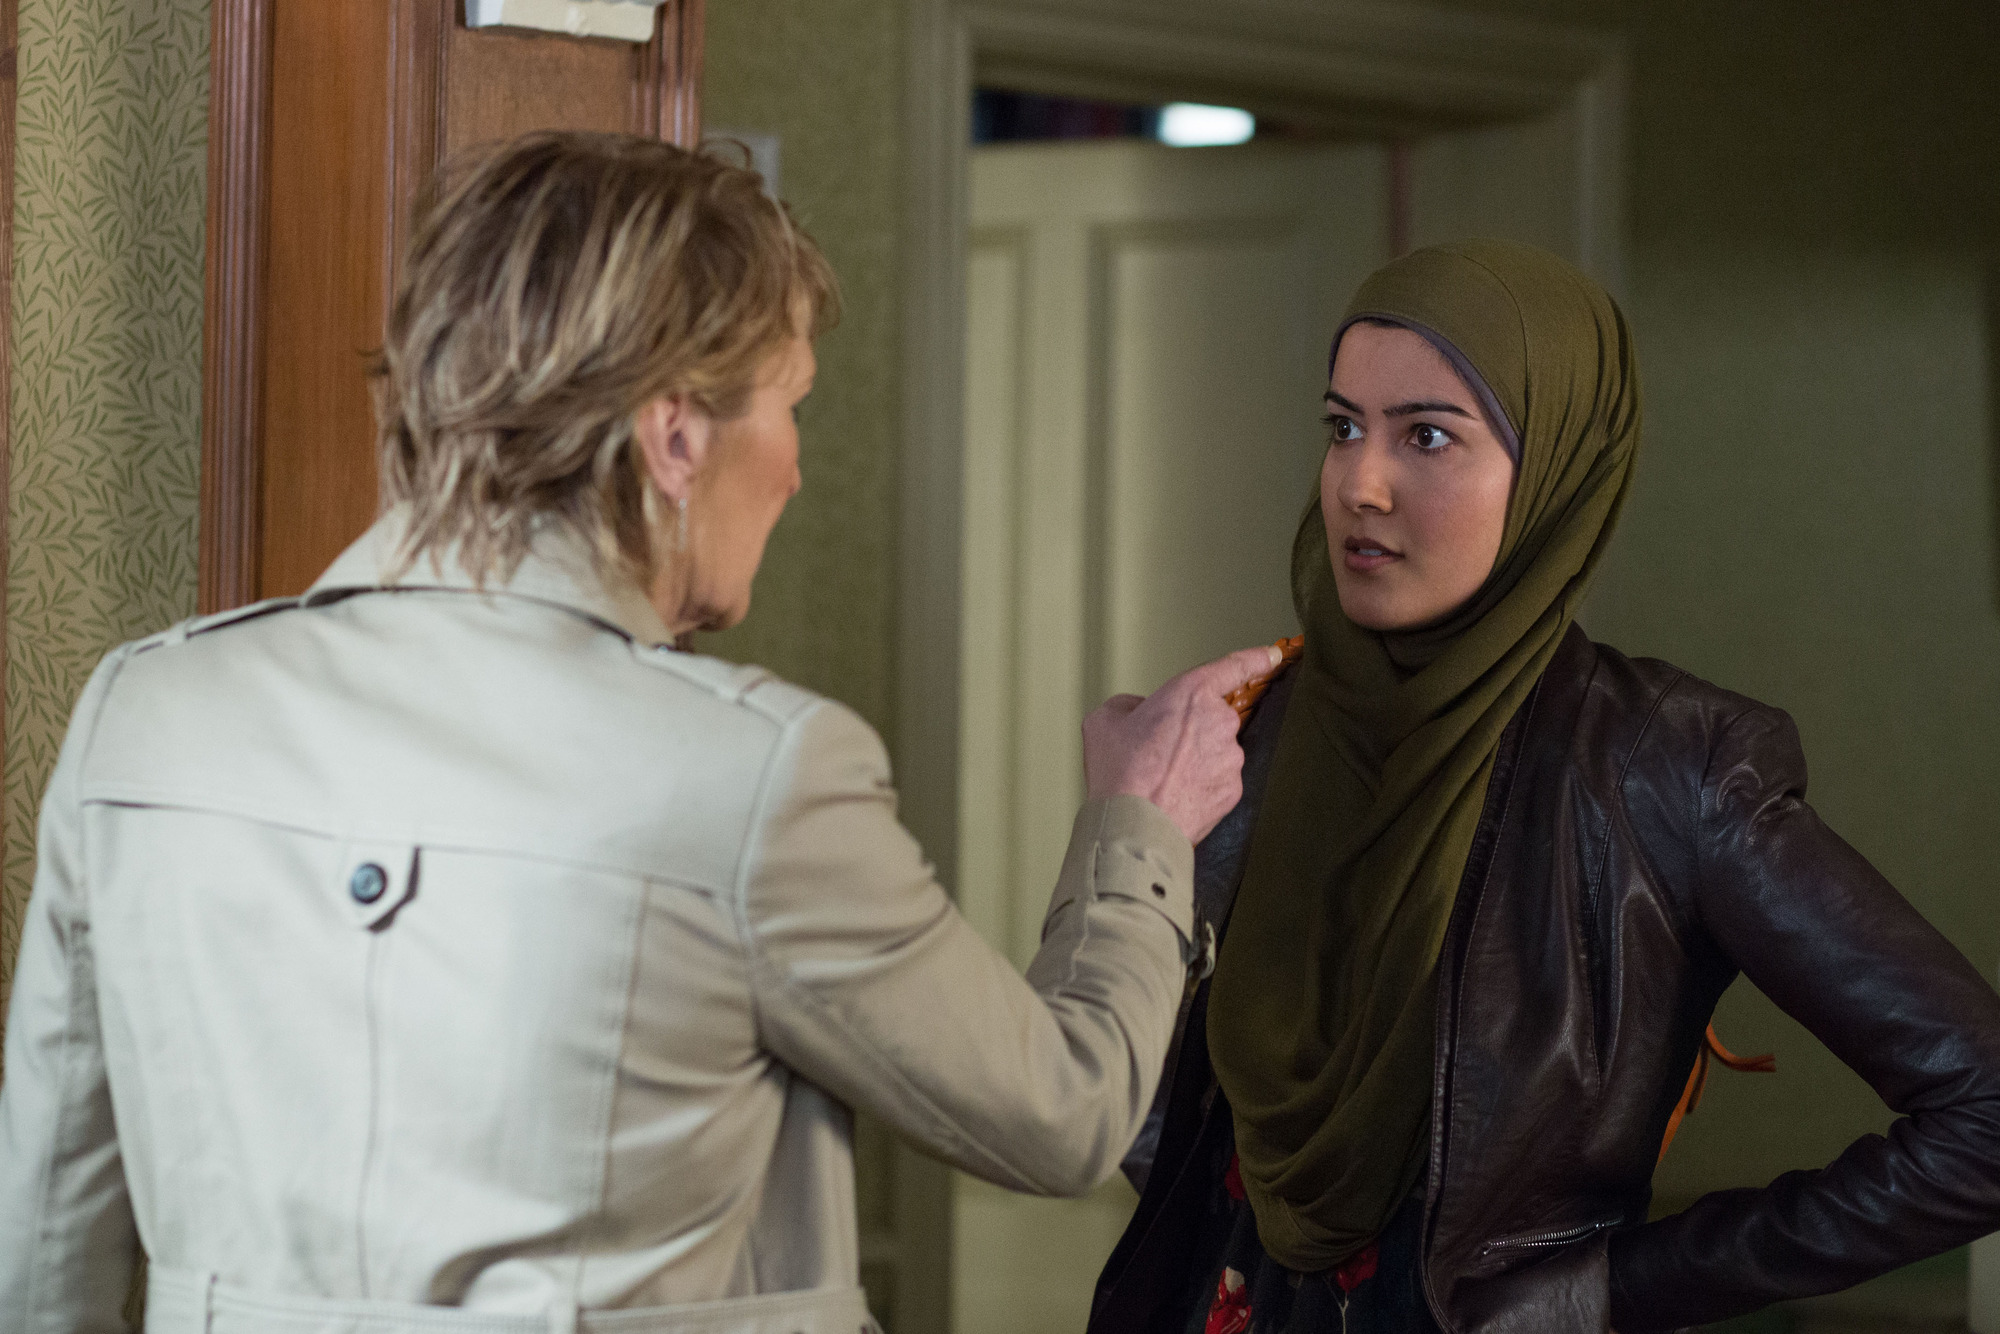 Shabnam lies that her baby died in EastEnders and Jai Sharma takes another hostage in Emmerdale: 10 soap spoiler pictures